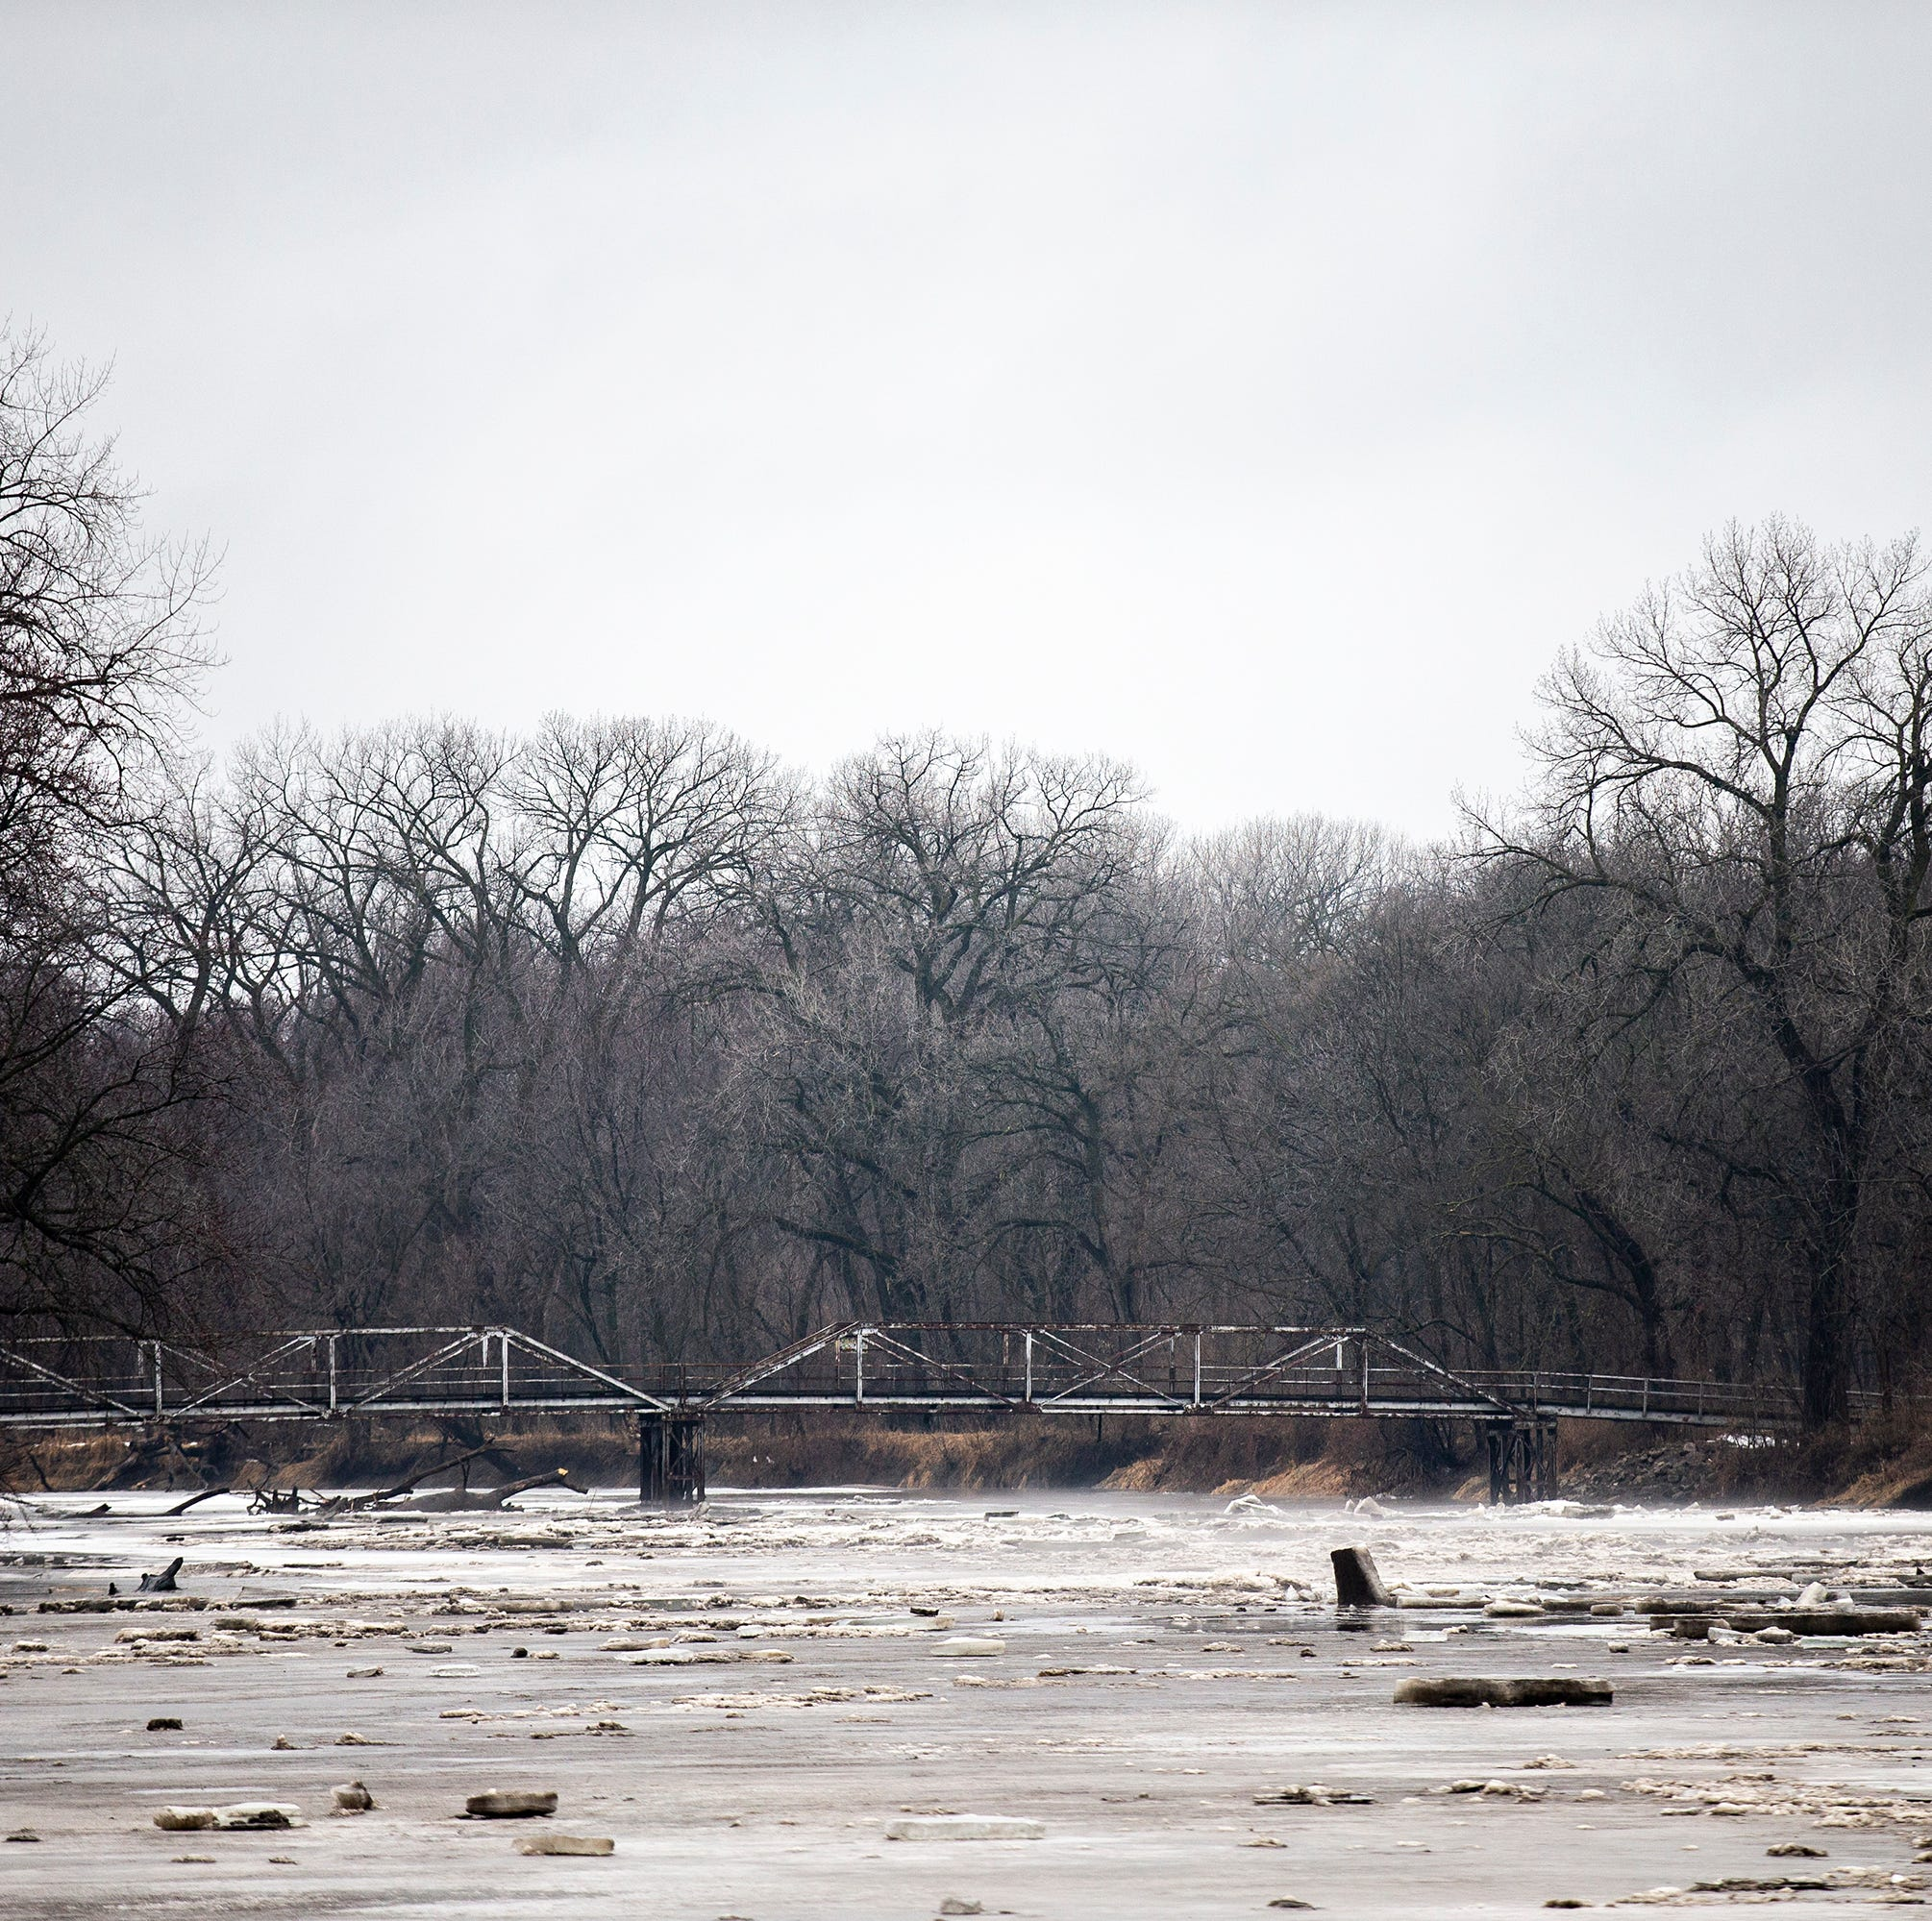 What areas of the Des Moines metro are at risk of flooding?